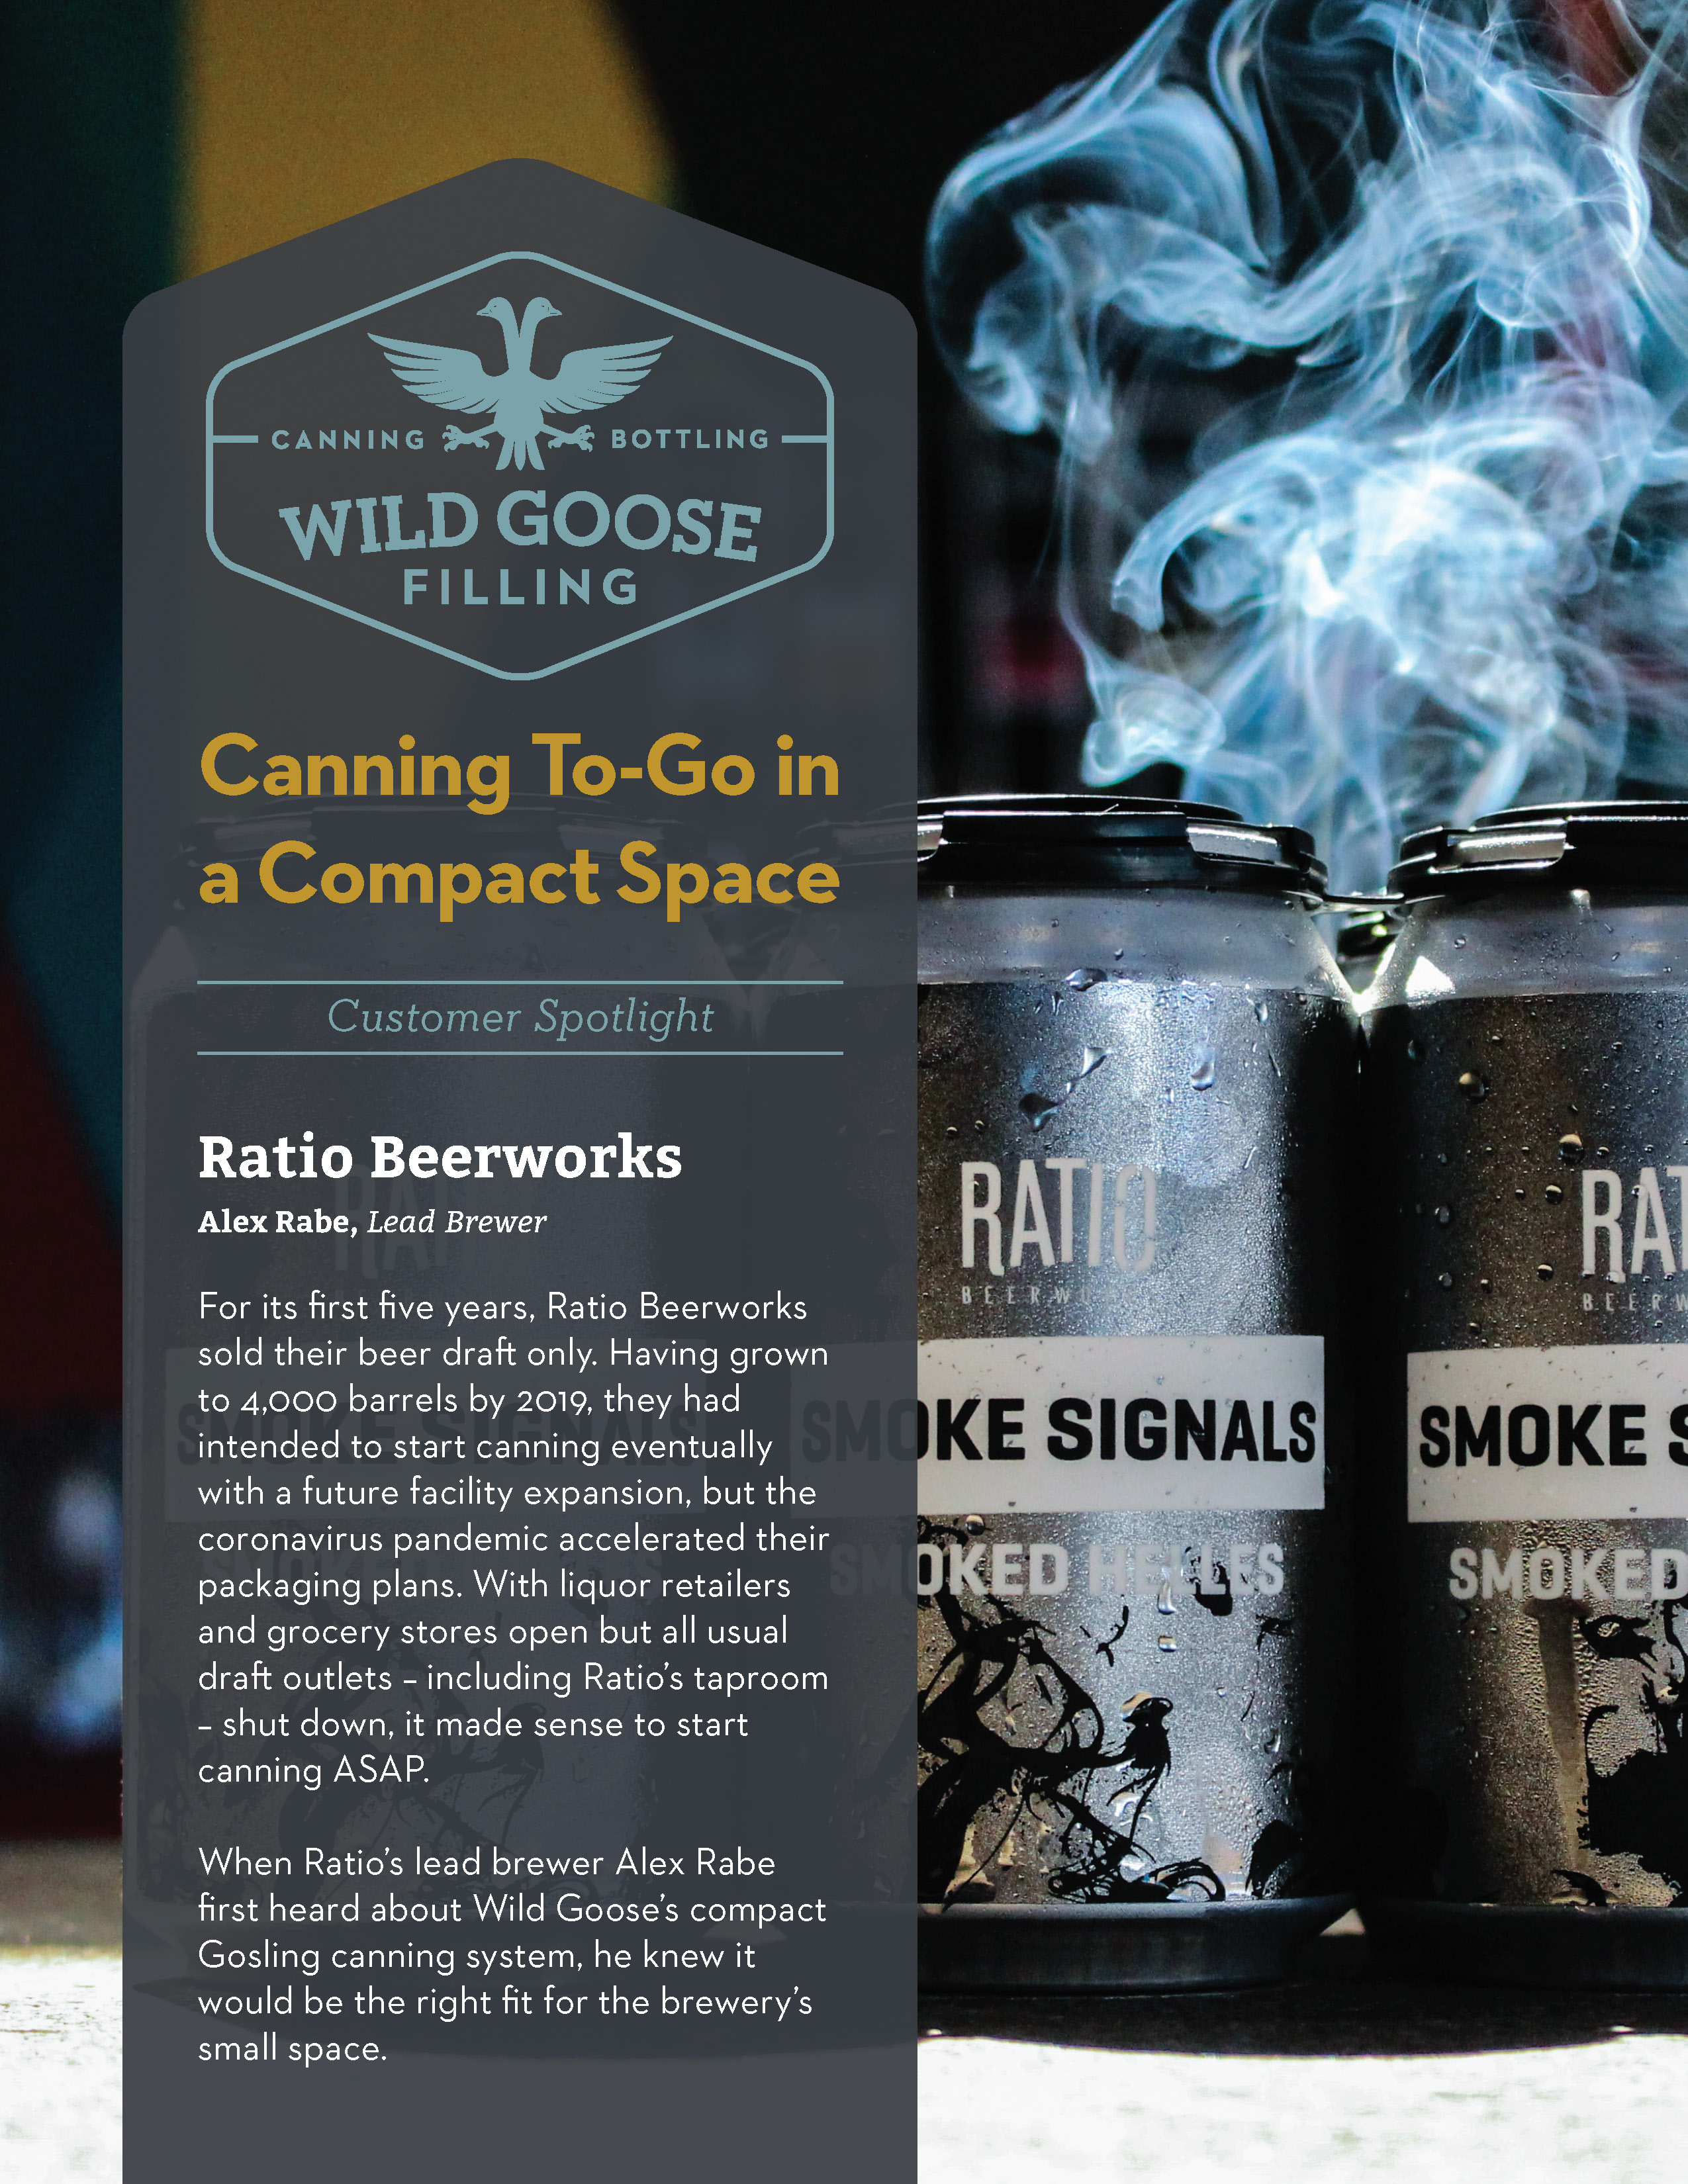 Ratio Beerworks Customer Spotlight Case Study_Canning To-Go with Wild Goose Filling Gosling System